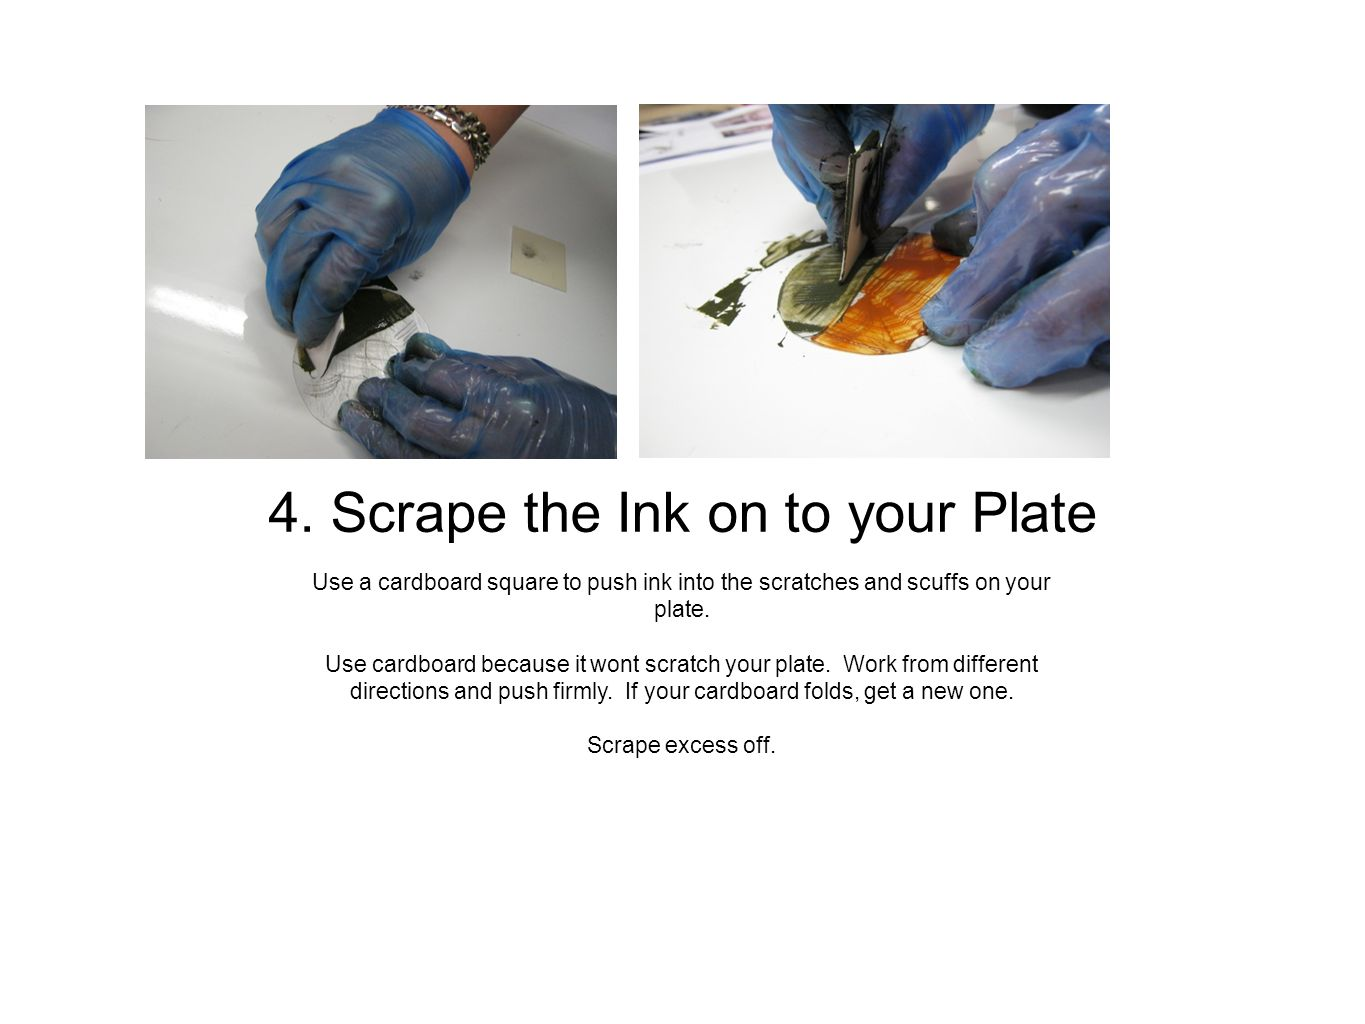 Use one sheet of phonebook paper held flat against the plate surface.